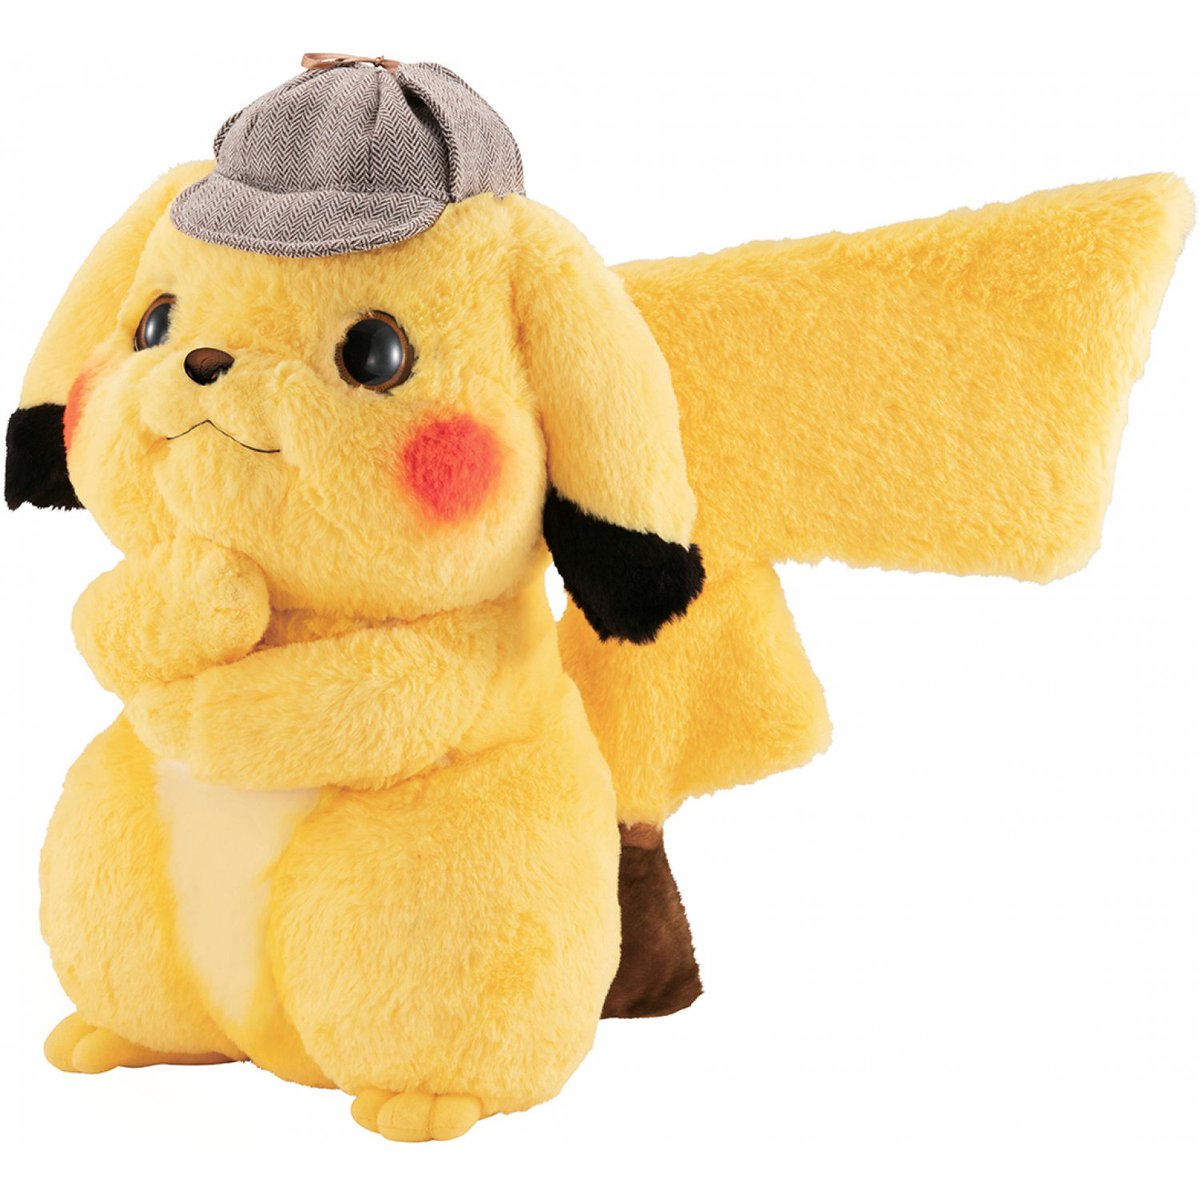 Nintendo Wire On Twitter The Life Size Detective Pikachu Plush From Bandai Is Available To Pre Order At Play Asia This Little Guy Is Pretty Expensive But He S So